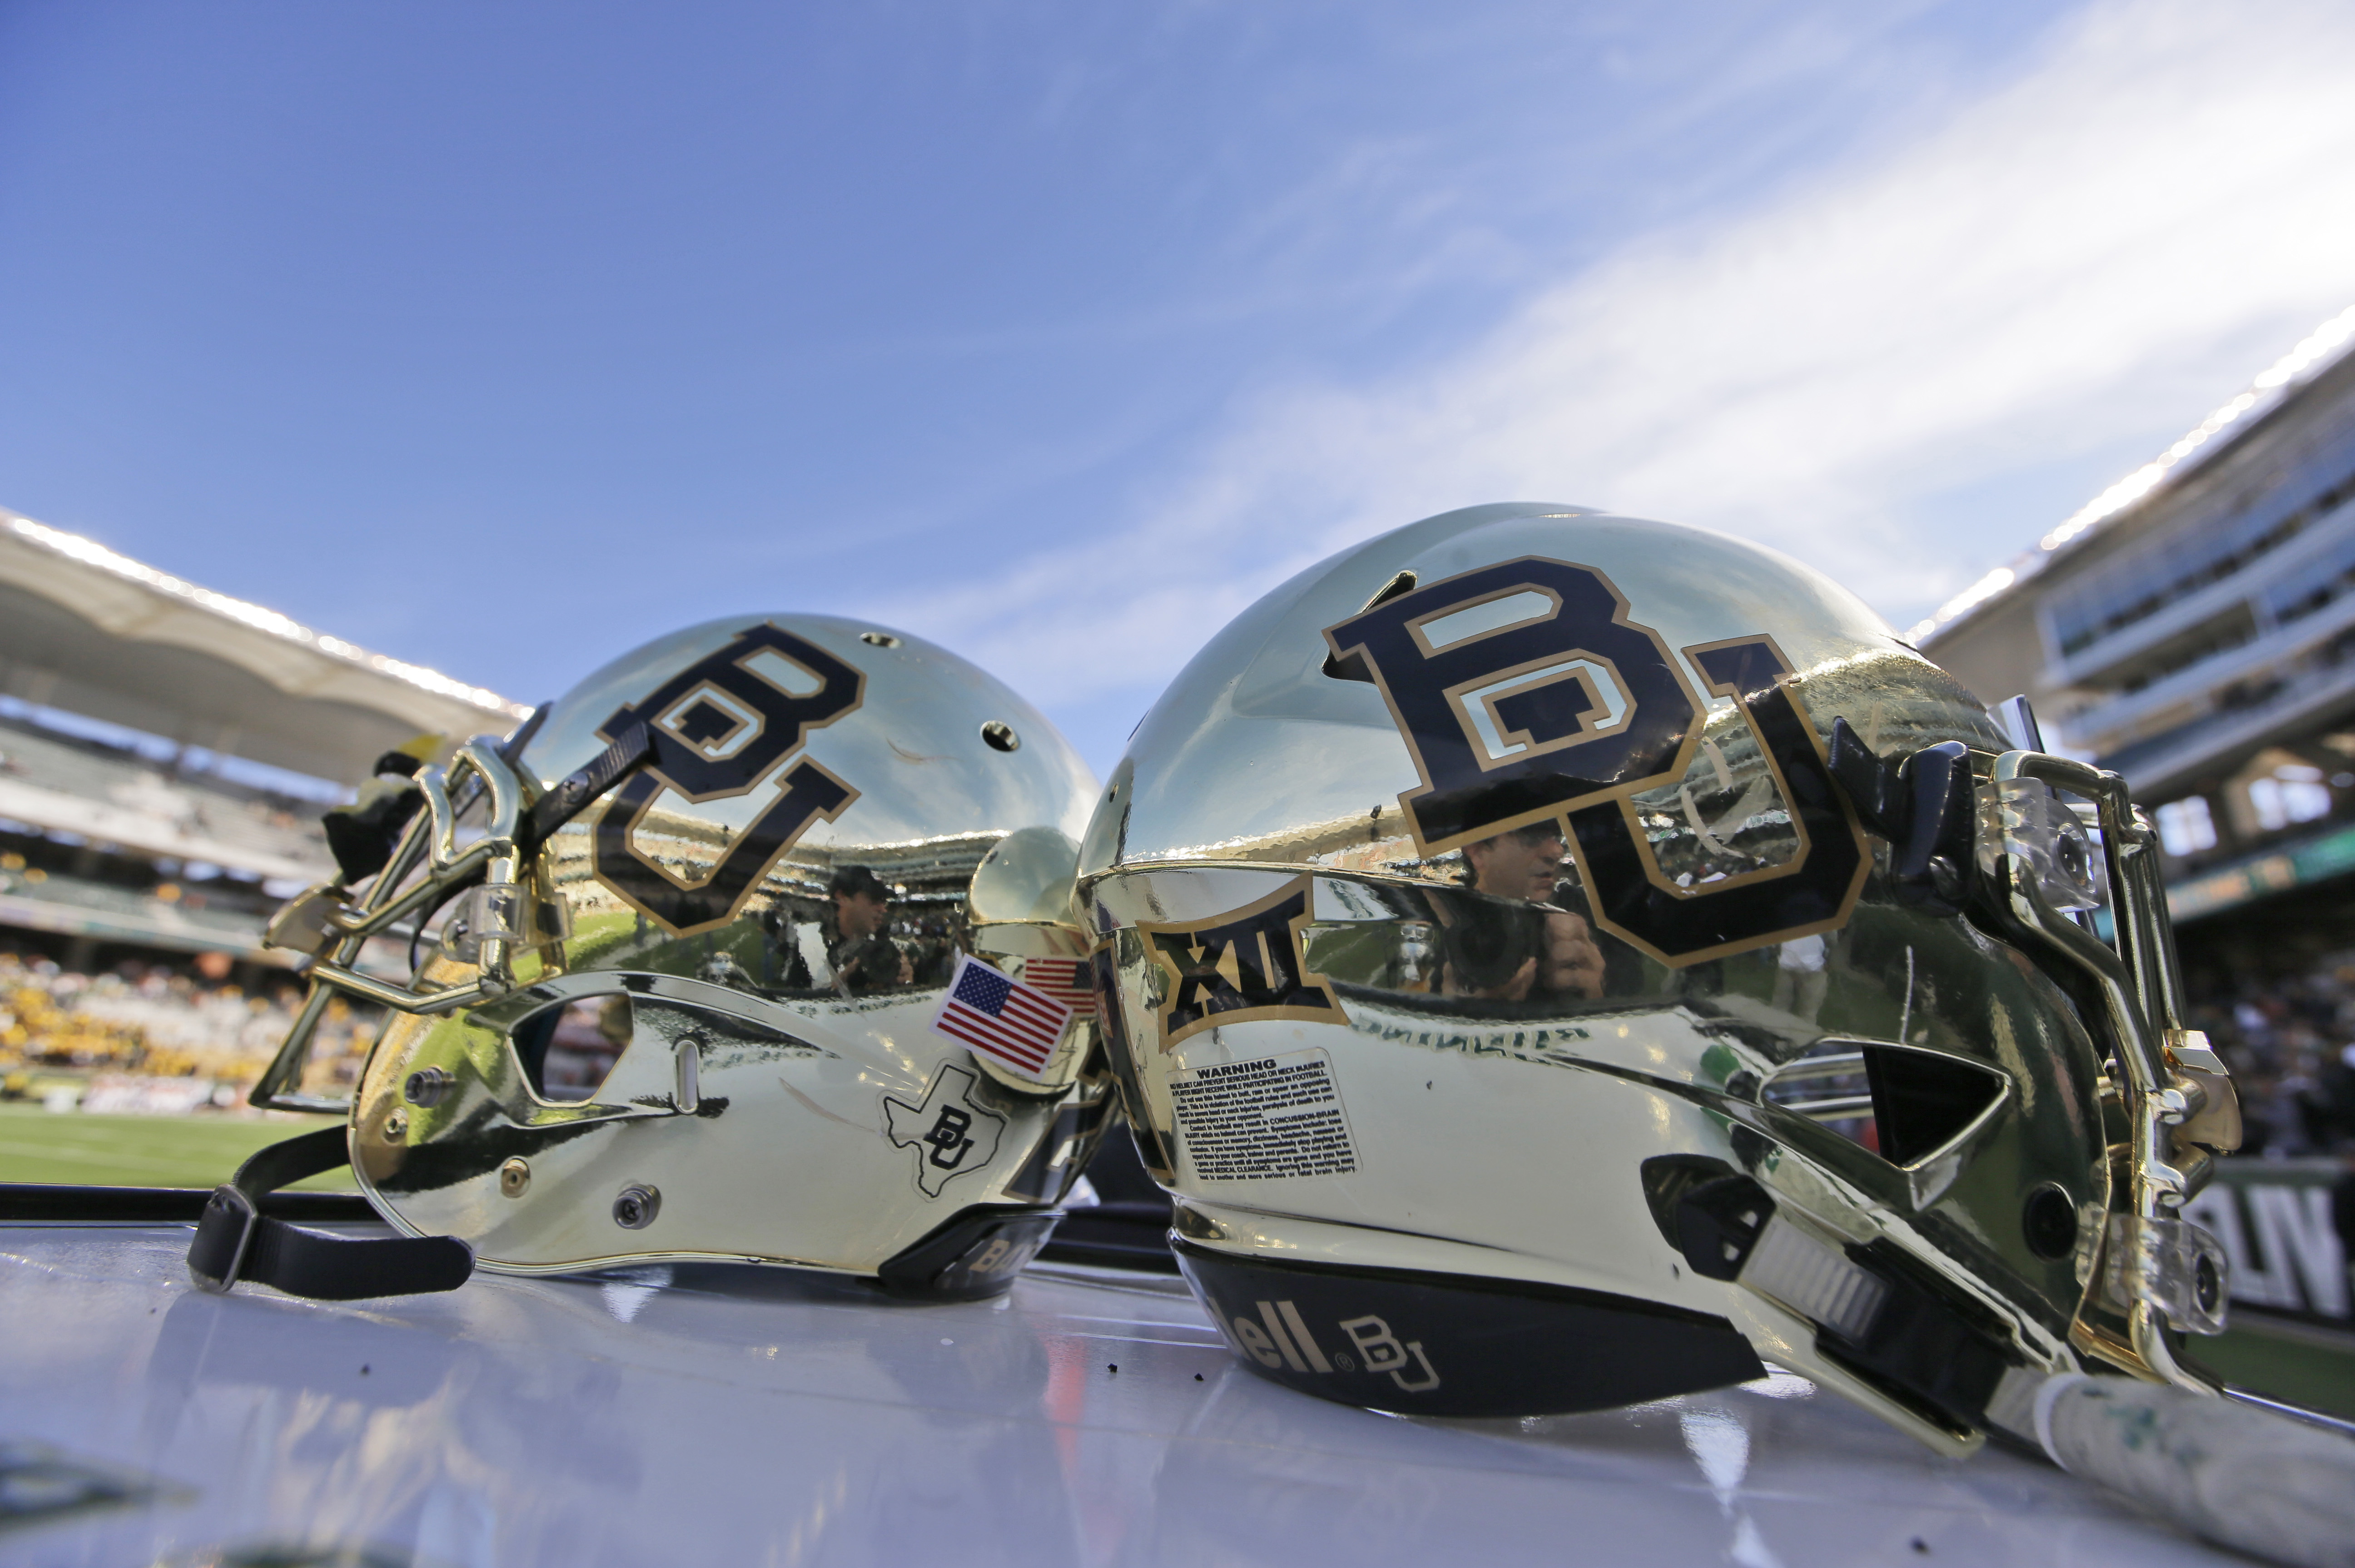 New Baylor lawsuit alleges rape video, dog fighting